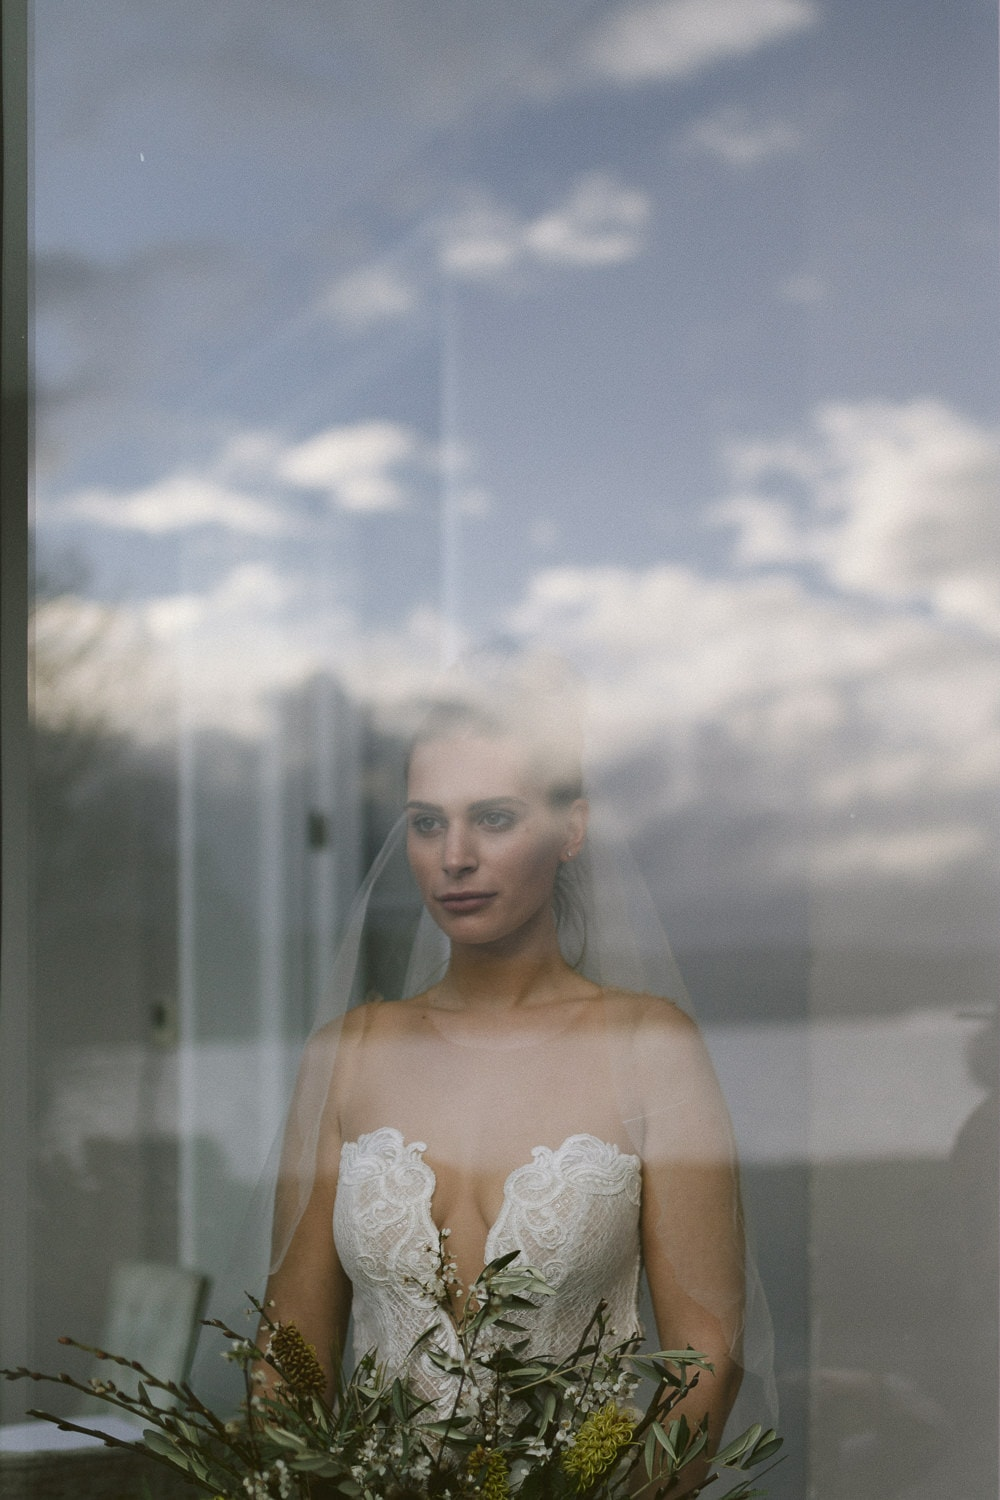 Storrs Hall with bride in window